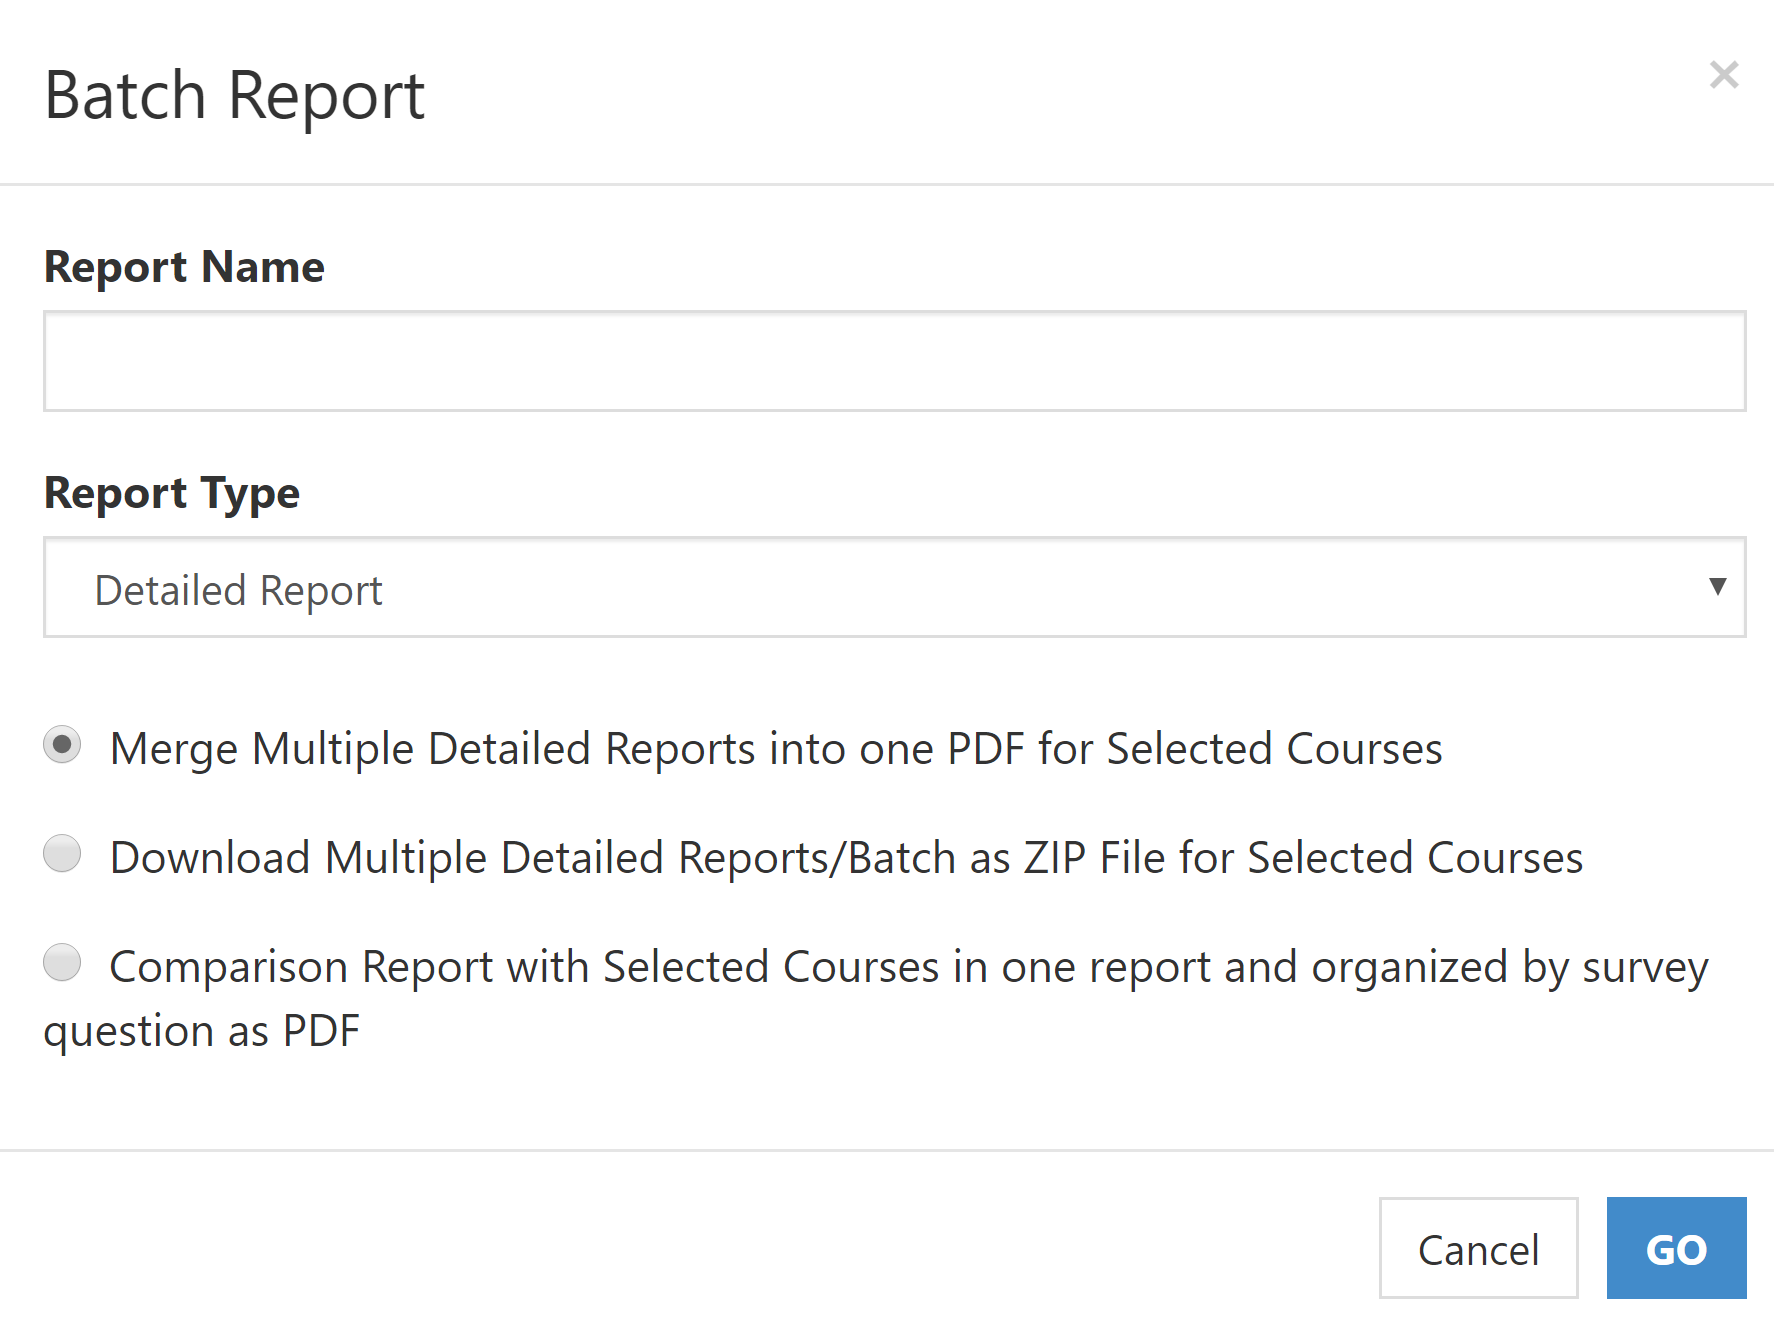 Graphic of Batch Report Window